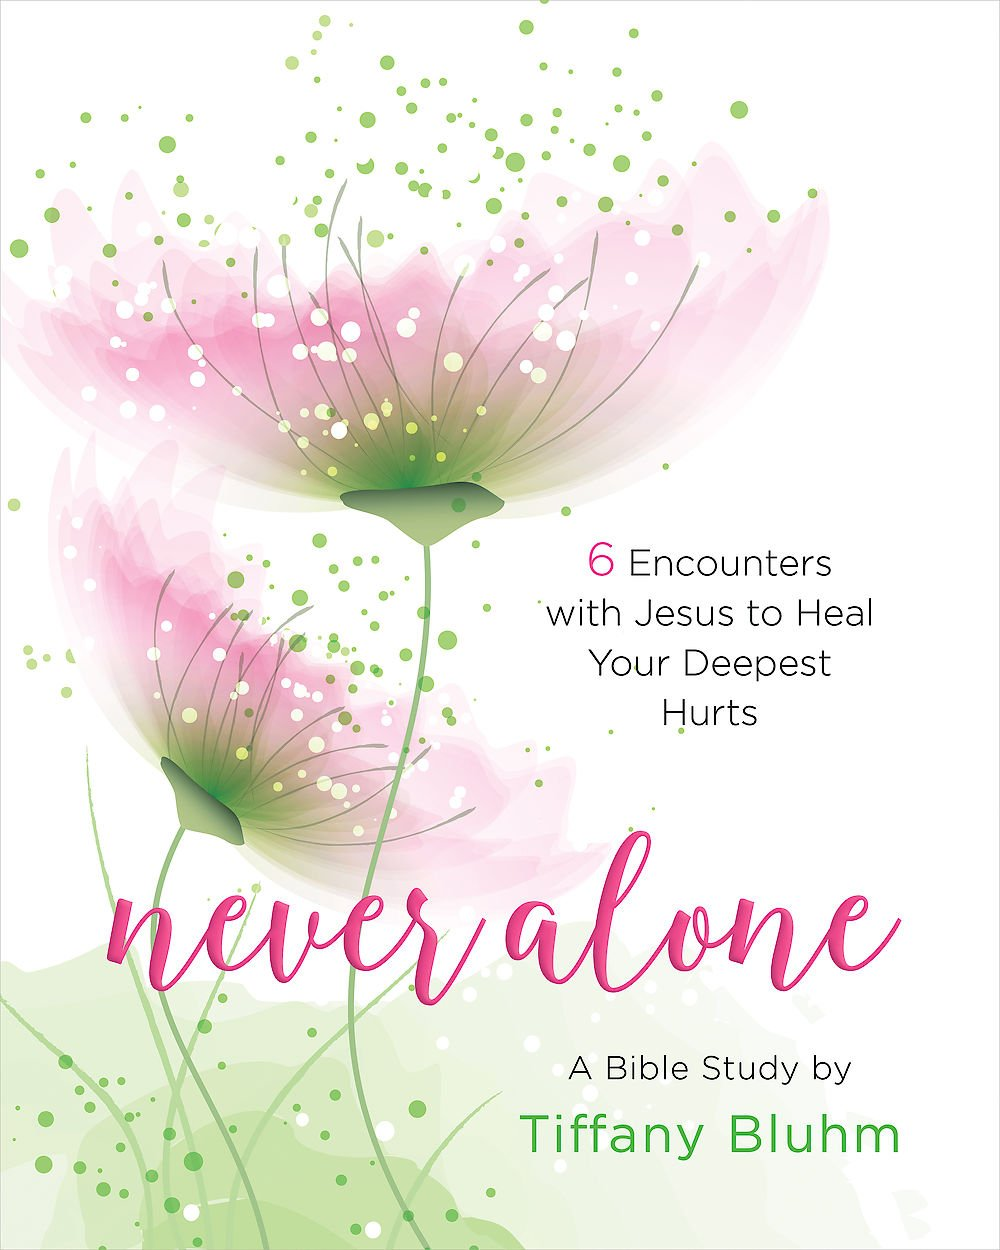 Never Alone - Women's Bible Study Participant Workbook: 6 Encounters with Jesus to Heal Your Deepest Hurts PDF